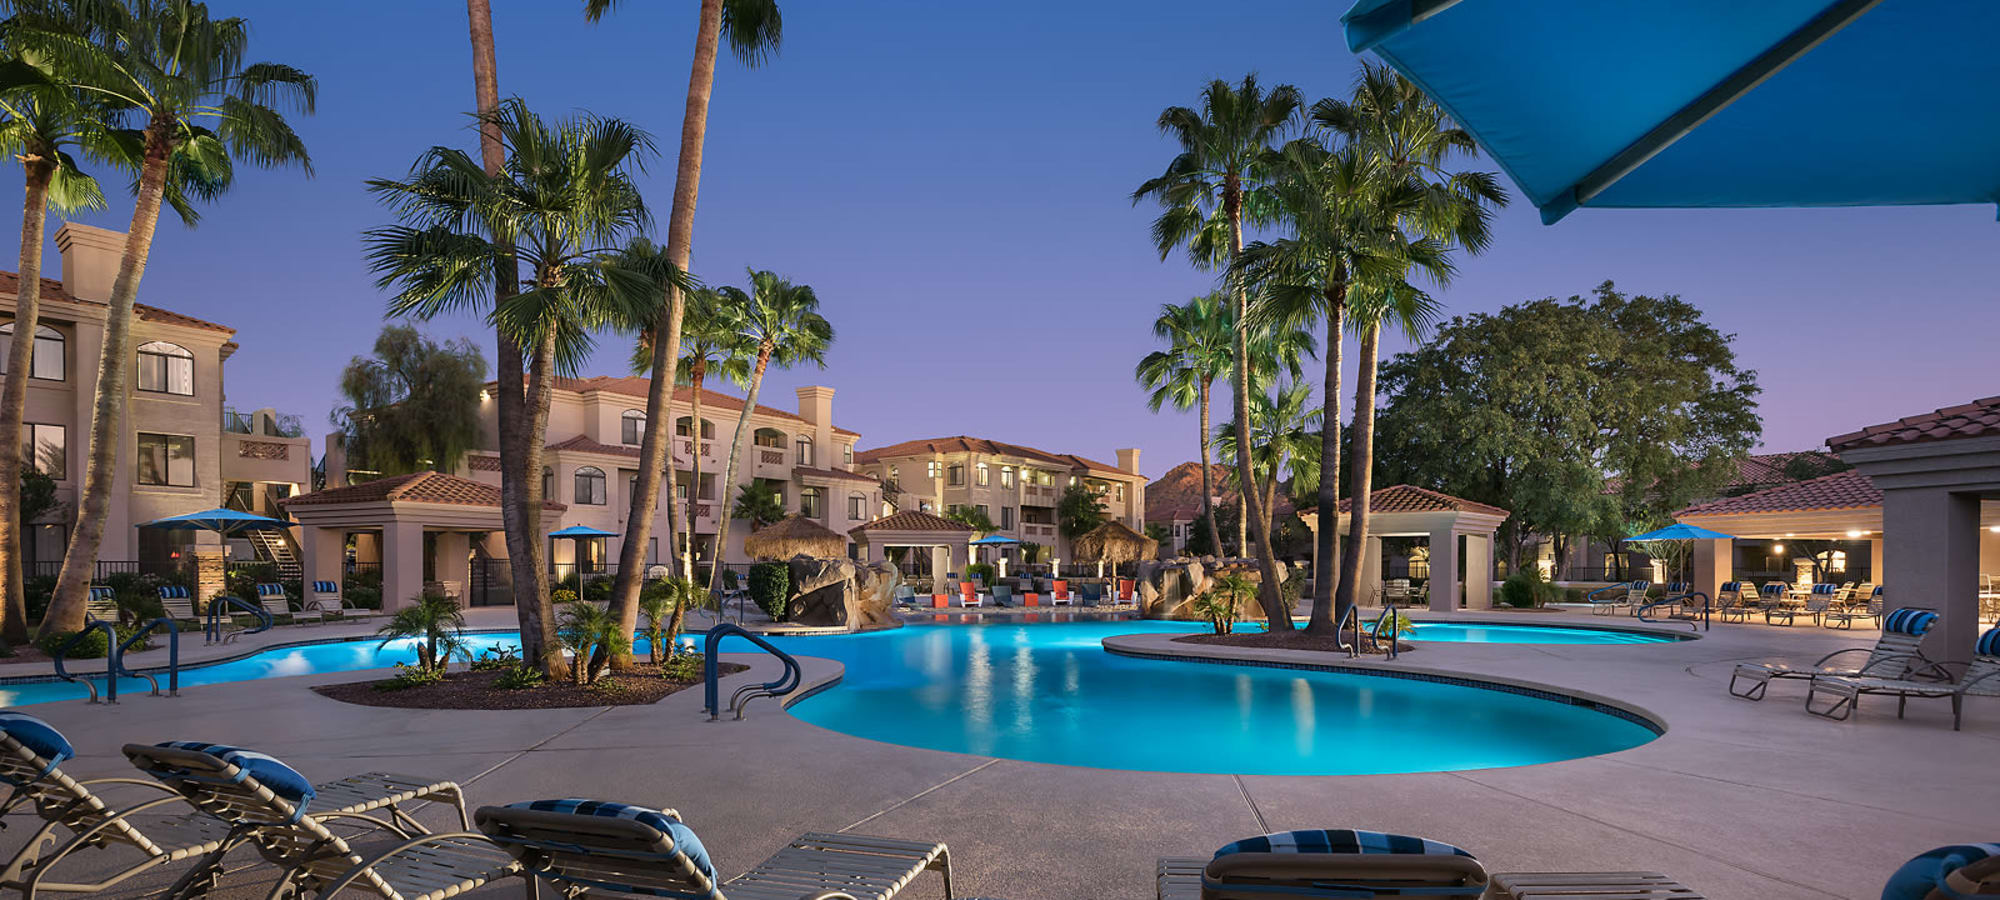 Beautiful swimming pool area at San Pedregal in Phoenix, Arizona